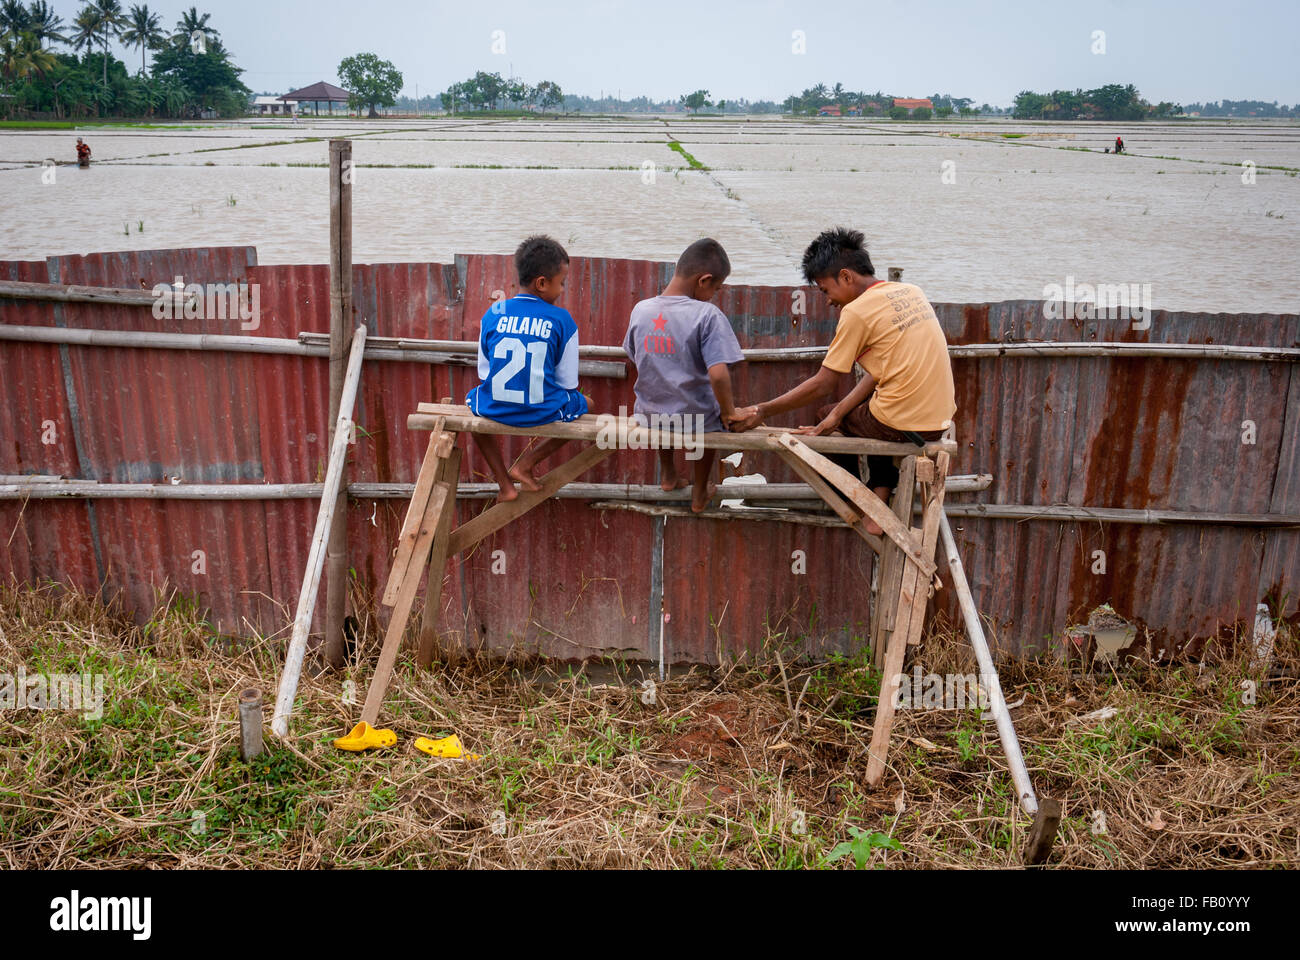 Children sit on wooden platform behind zinc fence. - Stock Image